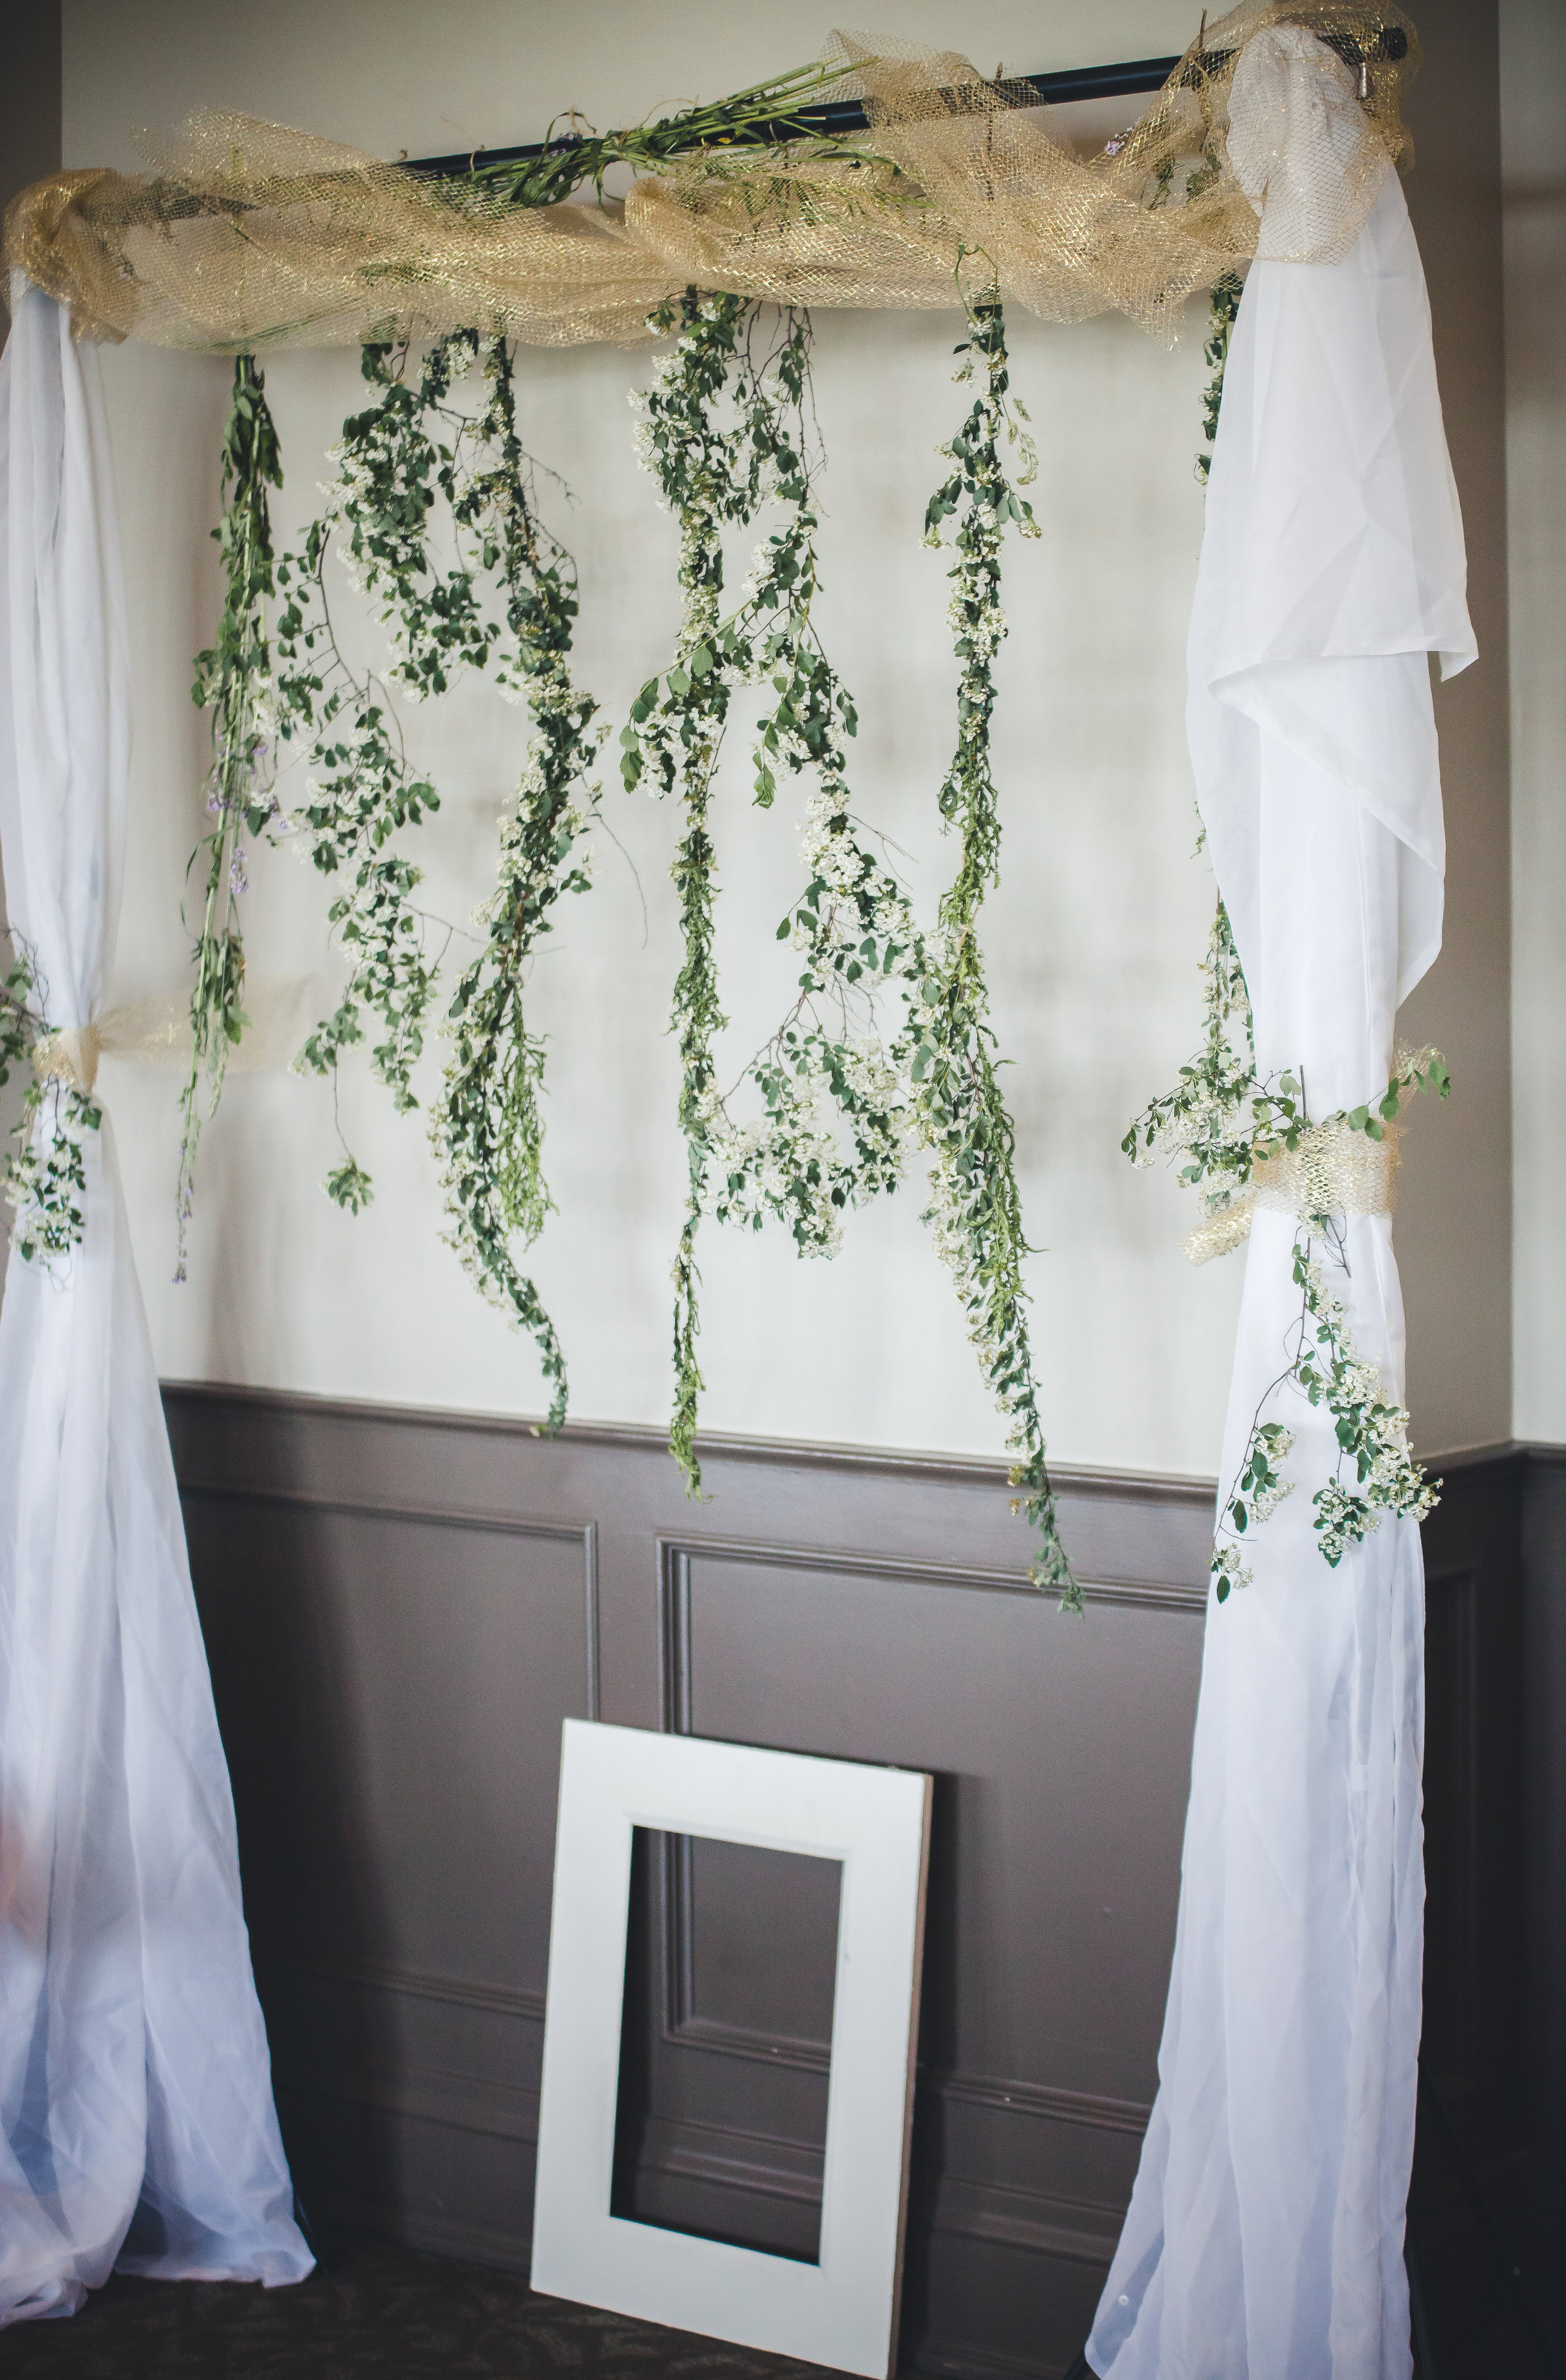 Wedding Backdrop Stand, Photo Booth Stand, DIY PHOTODROP STAND